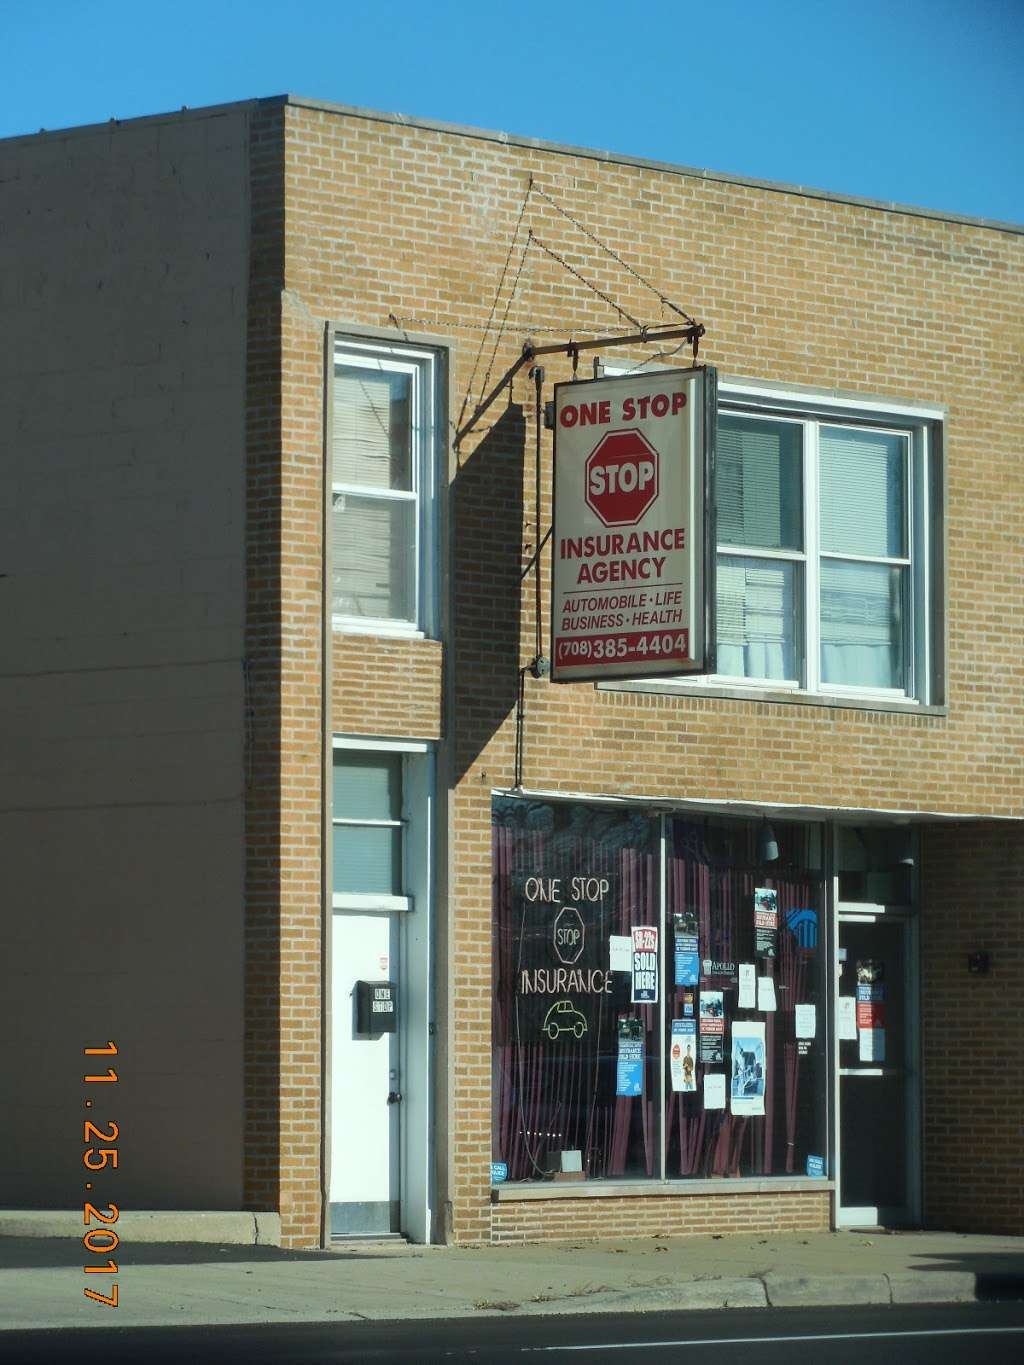 One Stop Insurance - insurance agency    Photo 1 of 1   Address: 4042 147th St, Midlothian, IL 60445, USA   Phone: (708) 385-4404